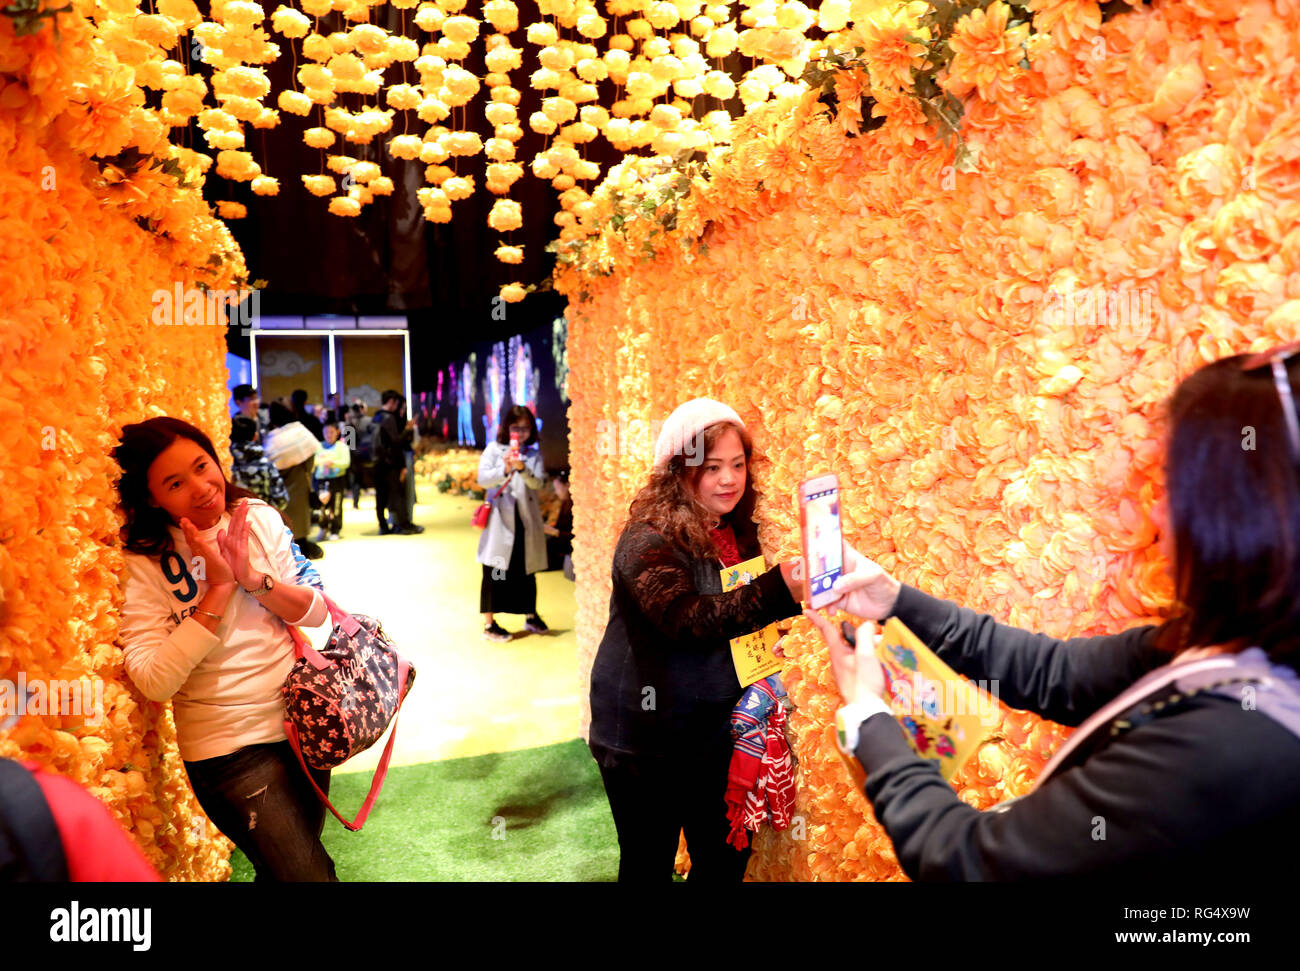 Hong Kong, China. 27th Jan, 2019. Visitors take selfies at a fair with the theme of auspicious animals from Chinese mythology in Times Square in Hong Kong, south China, Jan. 27, 2019. With appealing design and connotation of luck and fortune, the fair attracted many visitors. Credit: Wu Xiaochu/Xinhua/Alamy Live News Stock Photo